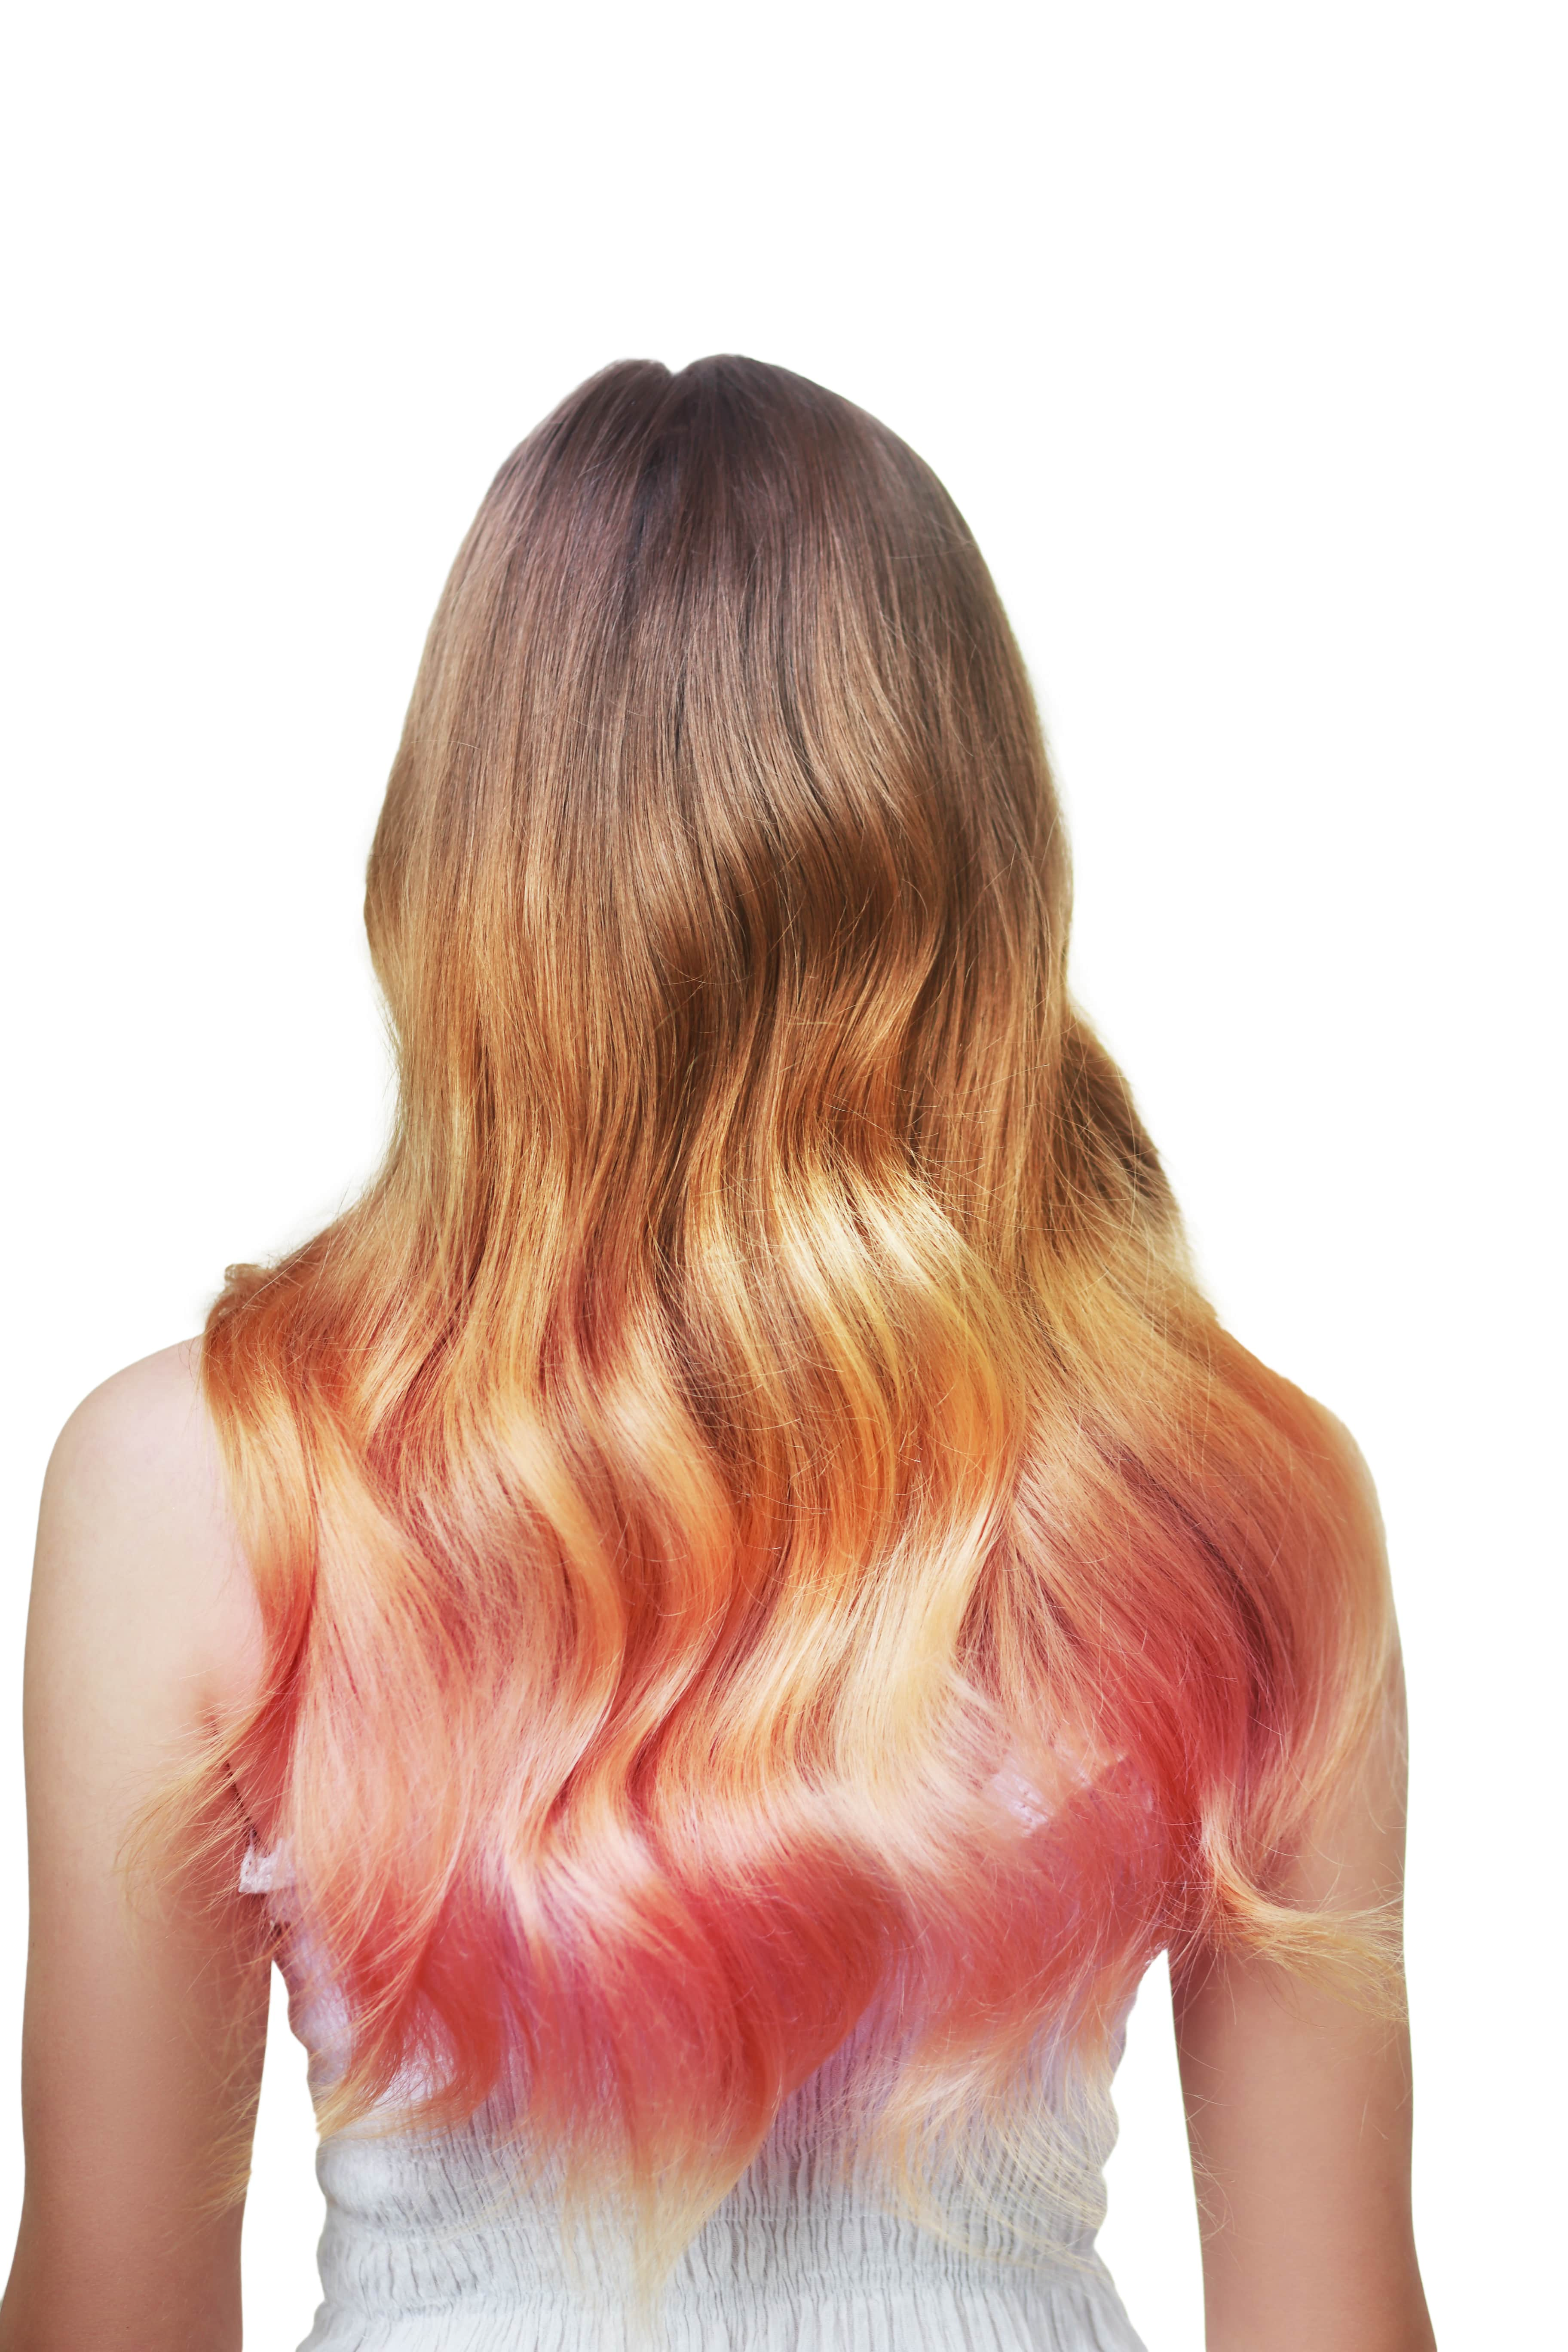 Rose Gold Hair Color 10 Ways To Try This Hair Color Trend